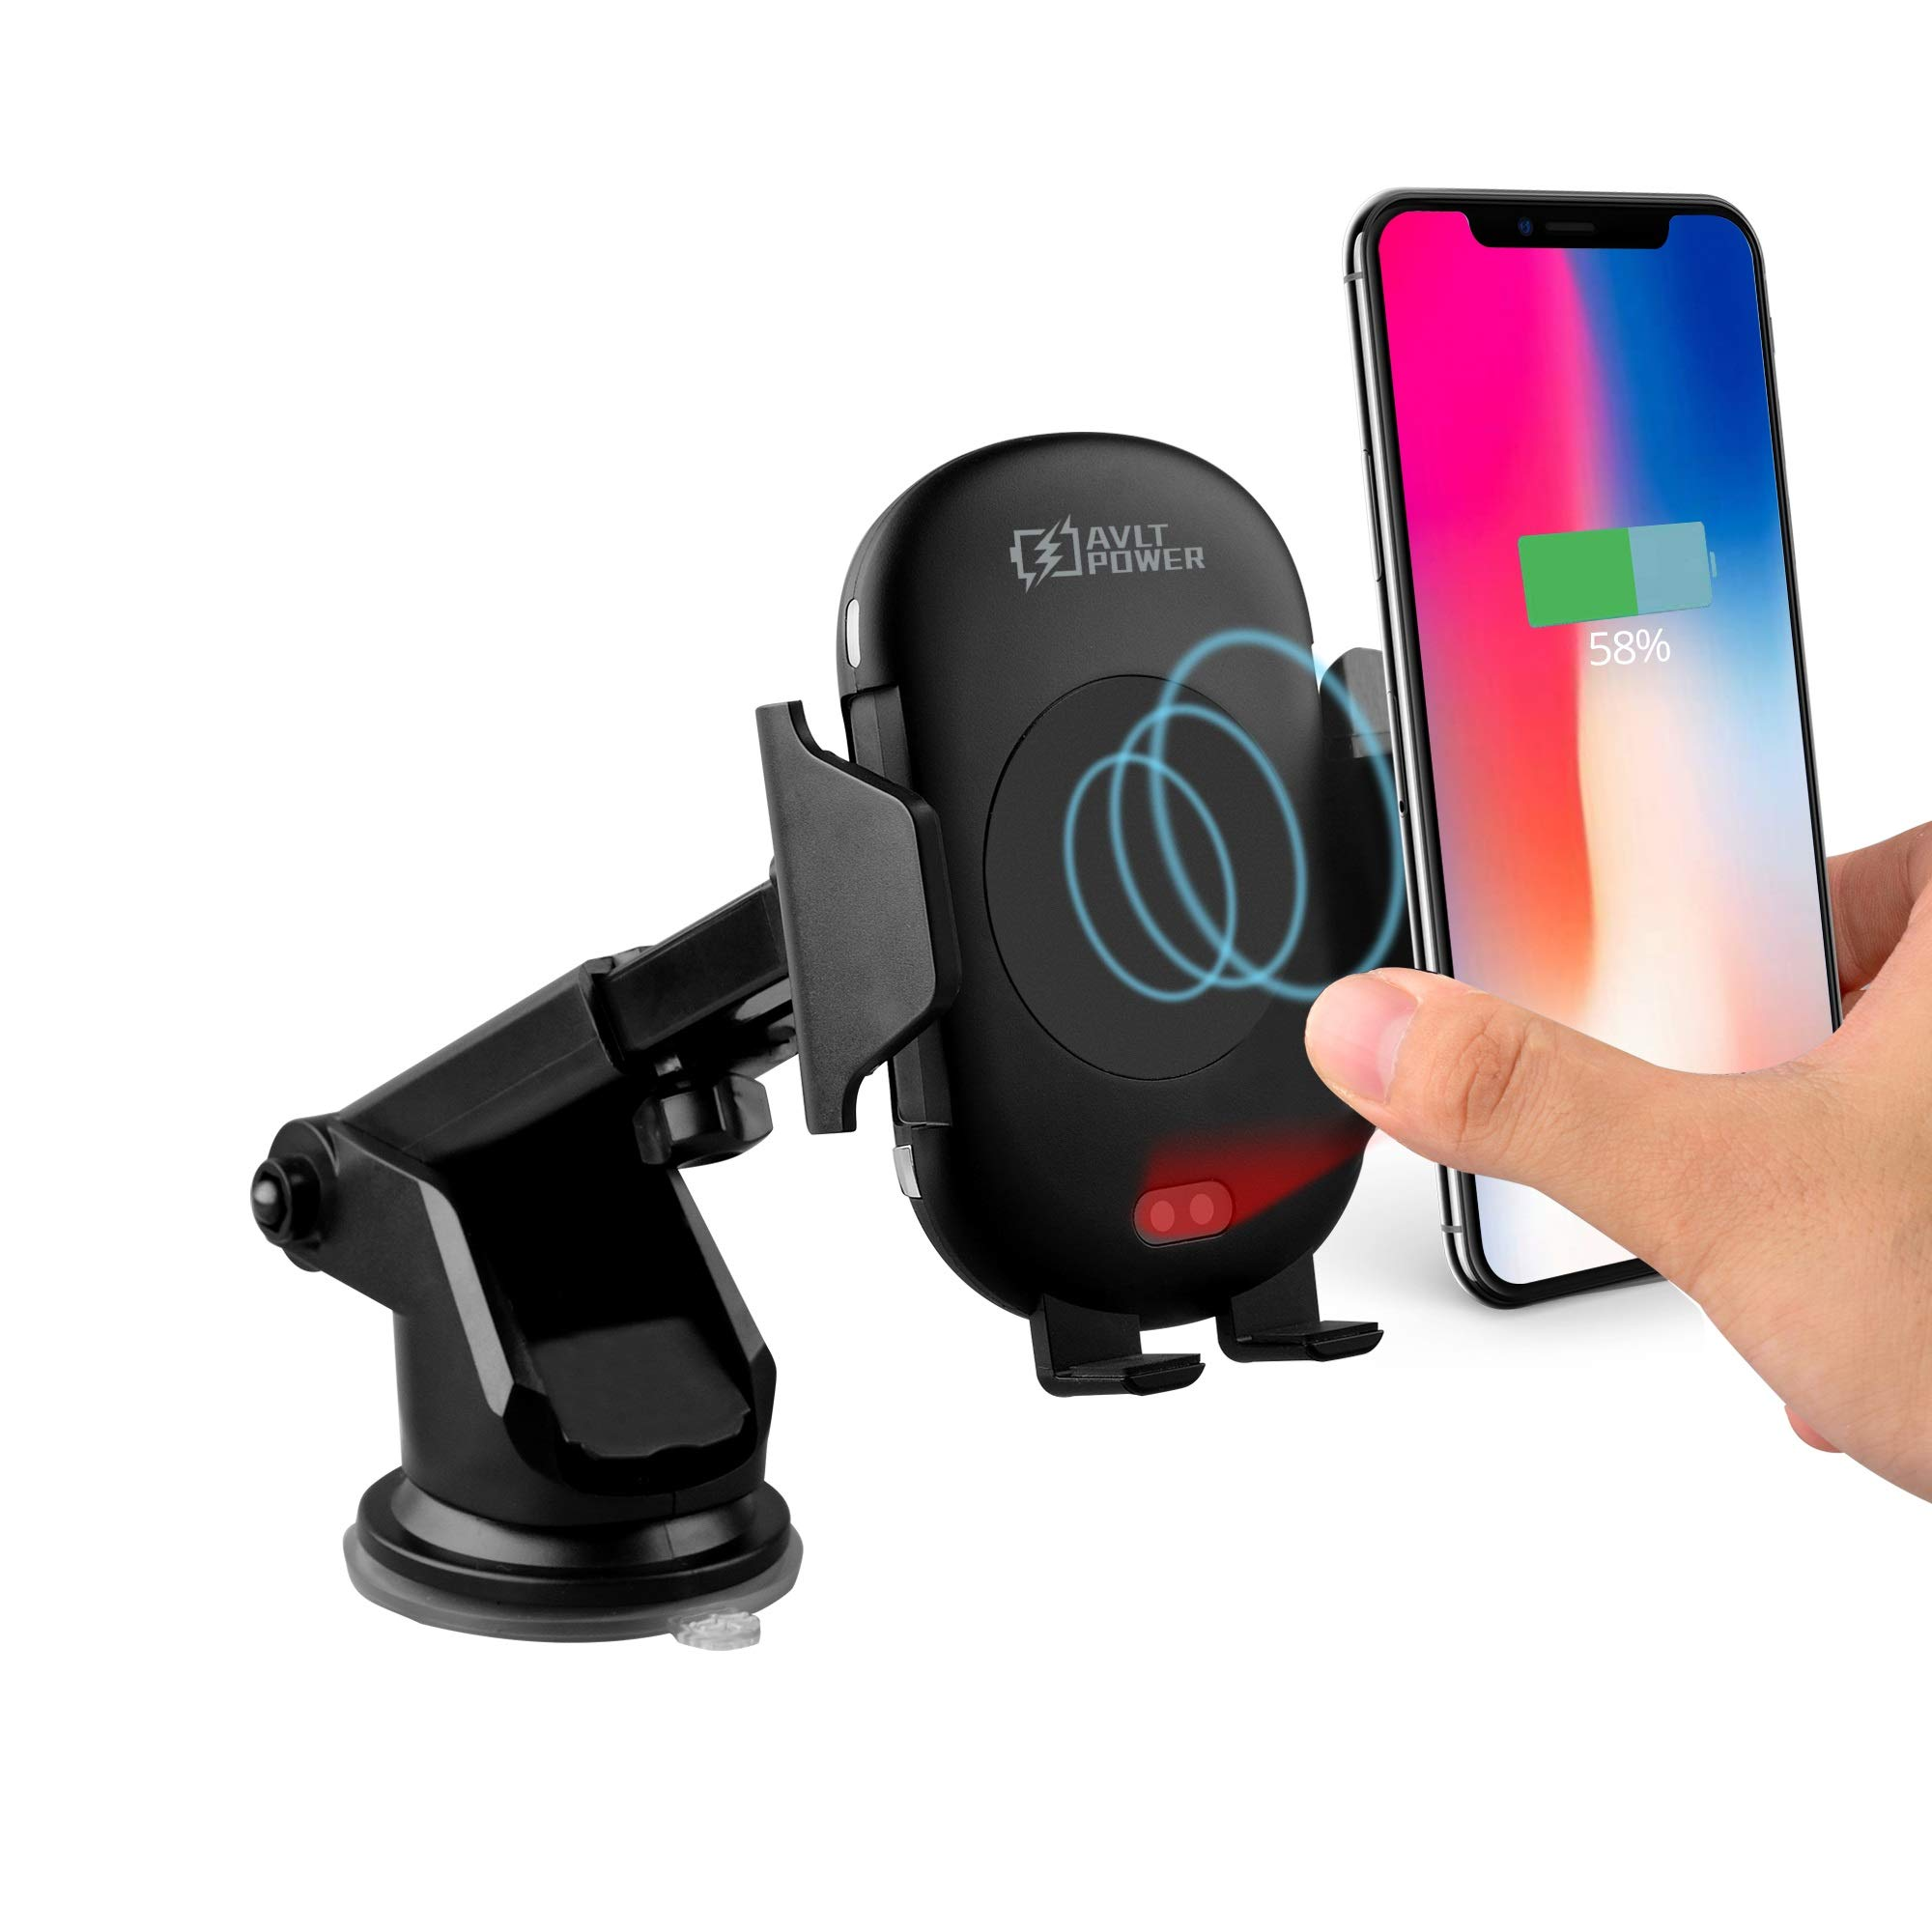 AVLT-Power Automatic 10W Qi Wireless Car Mount - Fast Wireless Charging Compatible with iPhone Xs MAX/XS/XR/X/8/8+ Samsung S10/S10+/S9/S9+/S8/S8+ by AVLT-Power